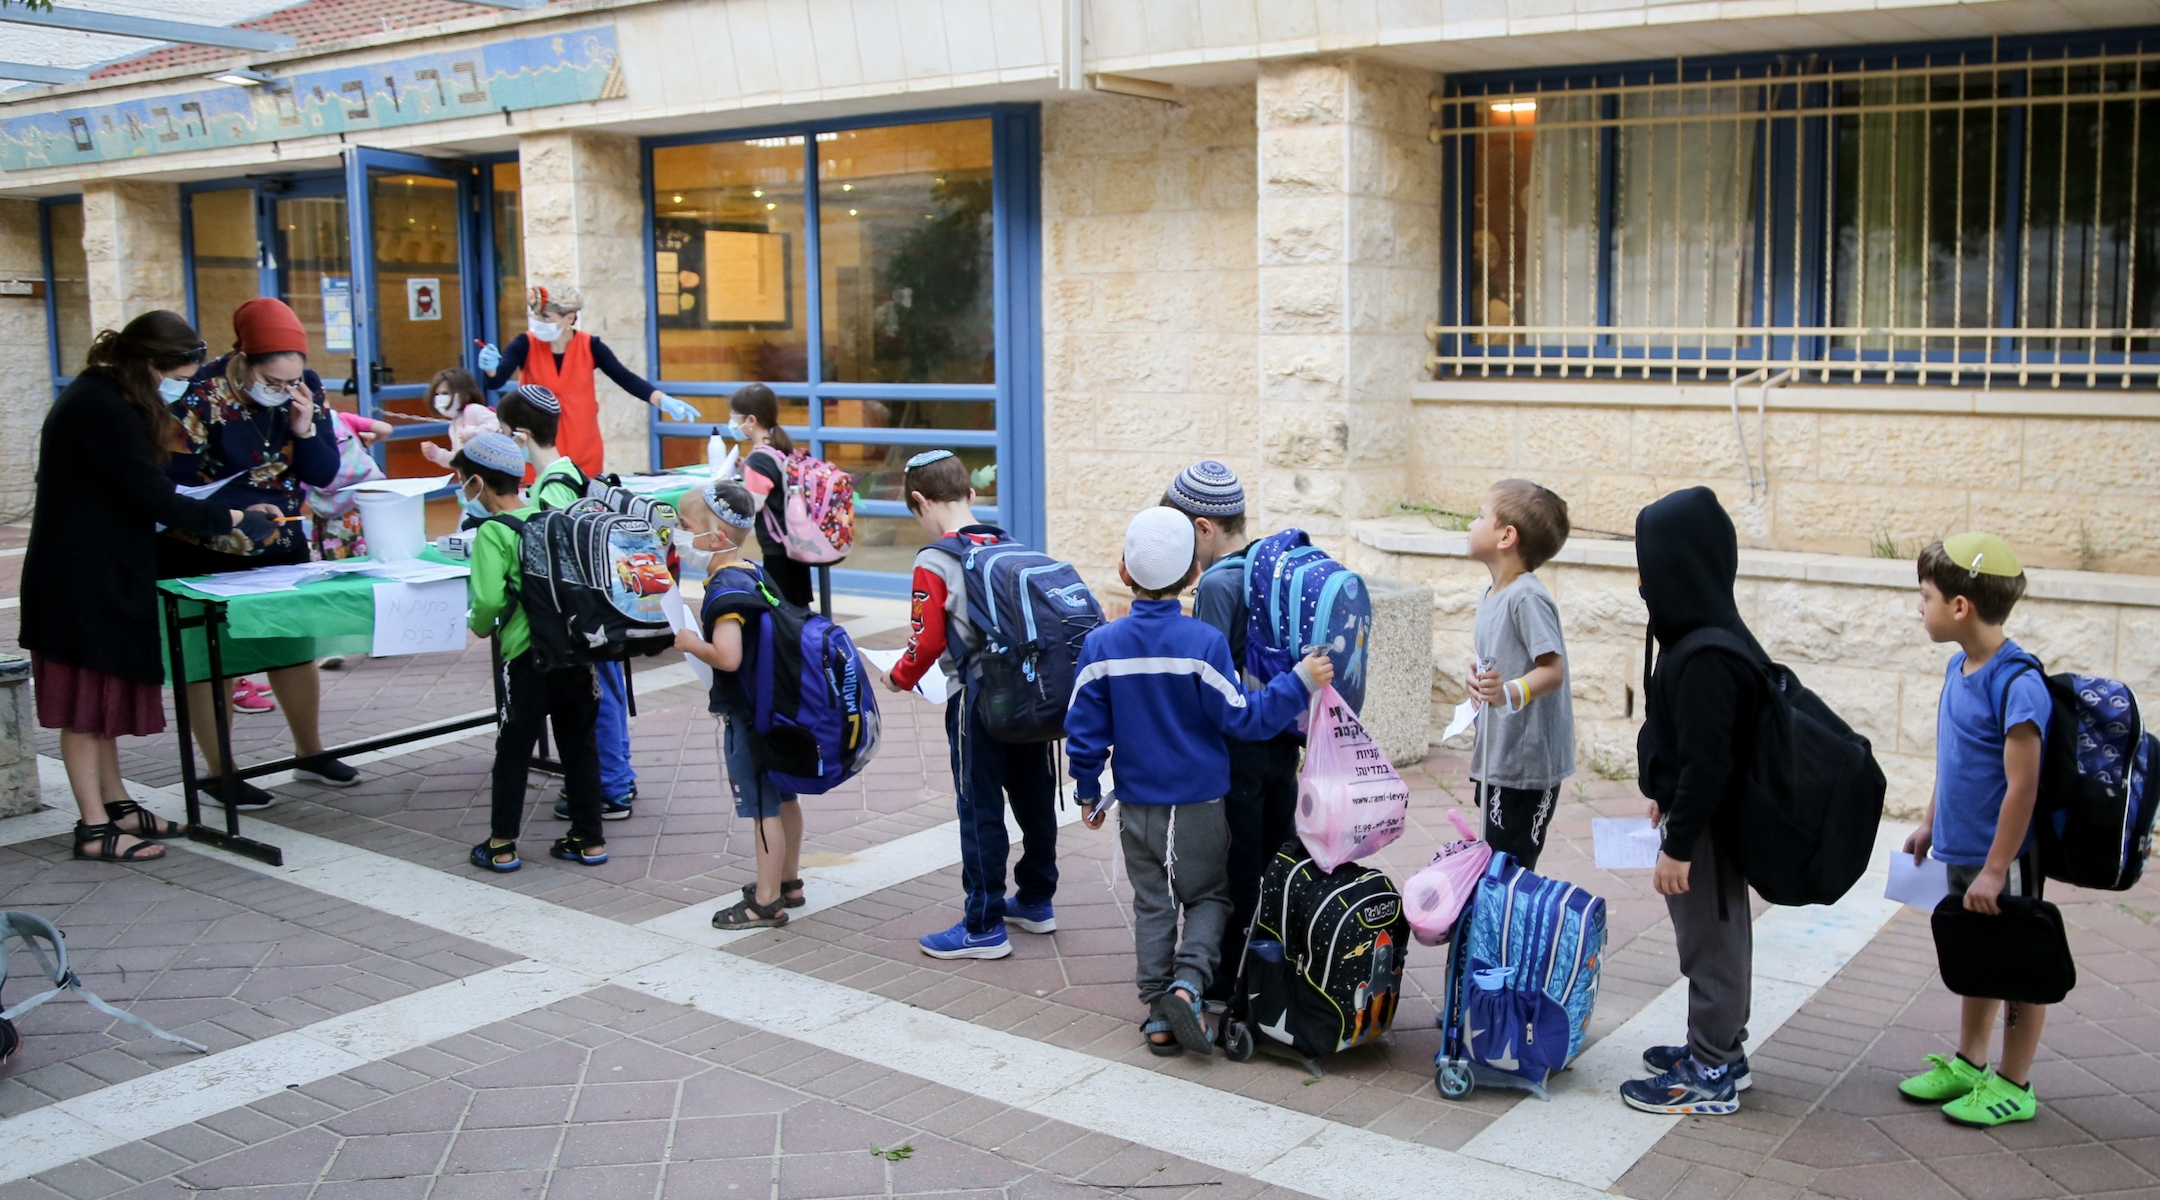 With COVID-19 cases rising in Israel, Netanyahu tells citizens to follow rules or face new...